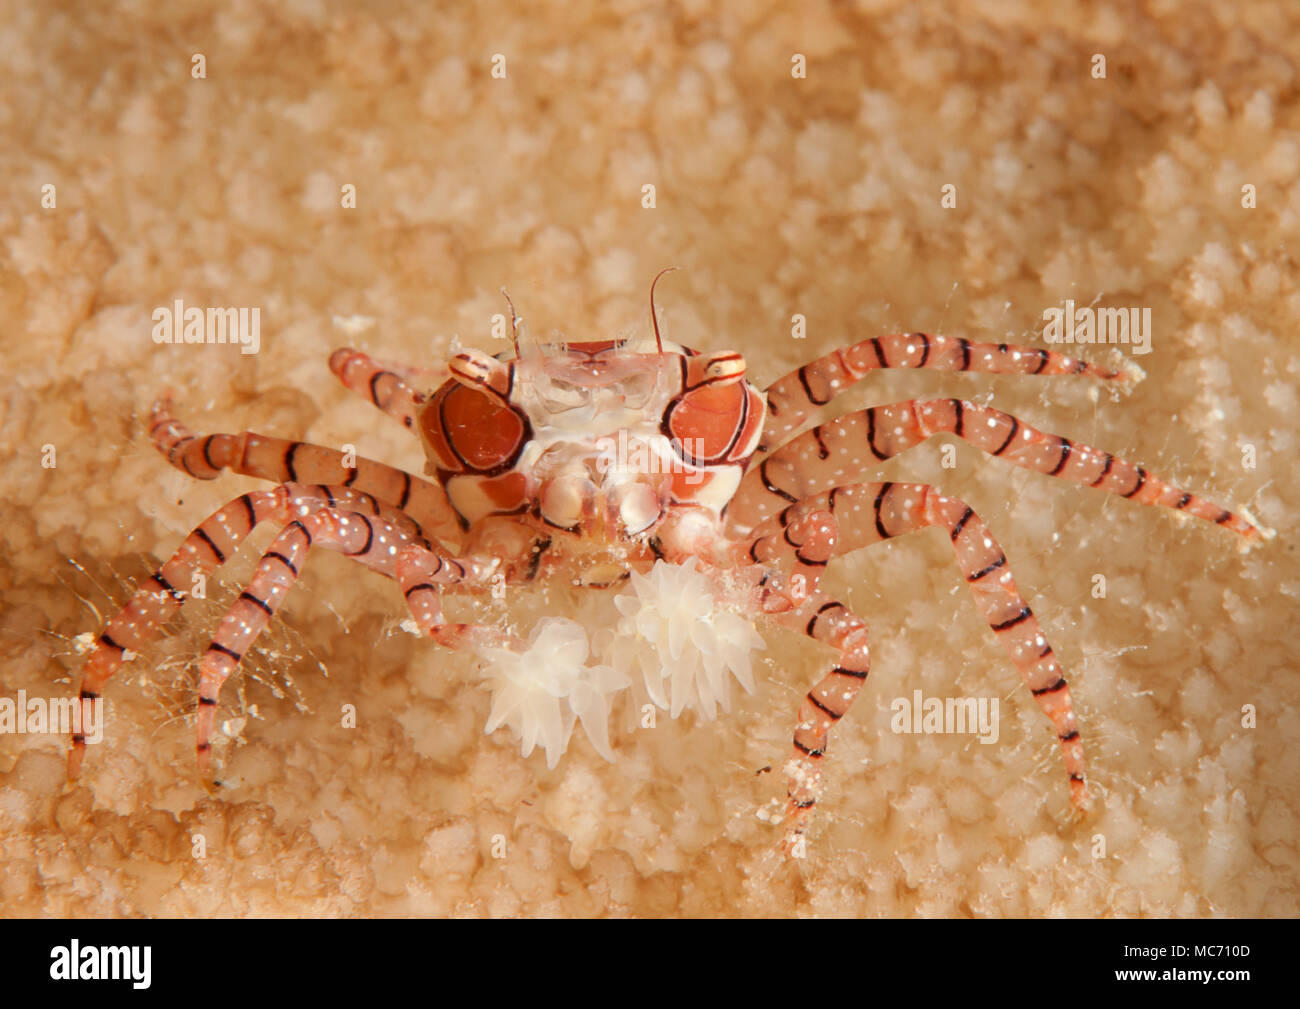 Mosaic boxer crab ( Lybia tesselata ) resting on coral reef of Bali, Indonesia - Stock Image